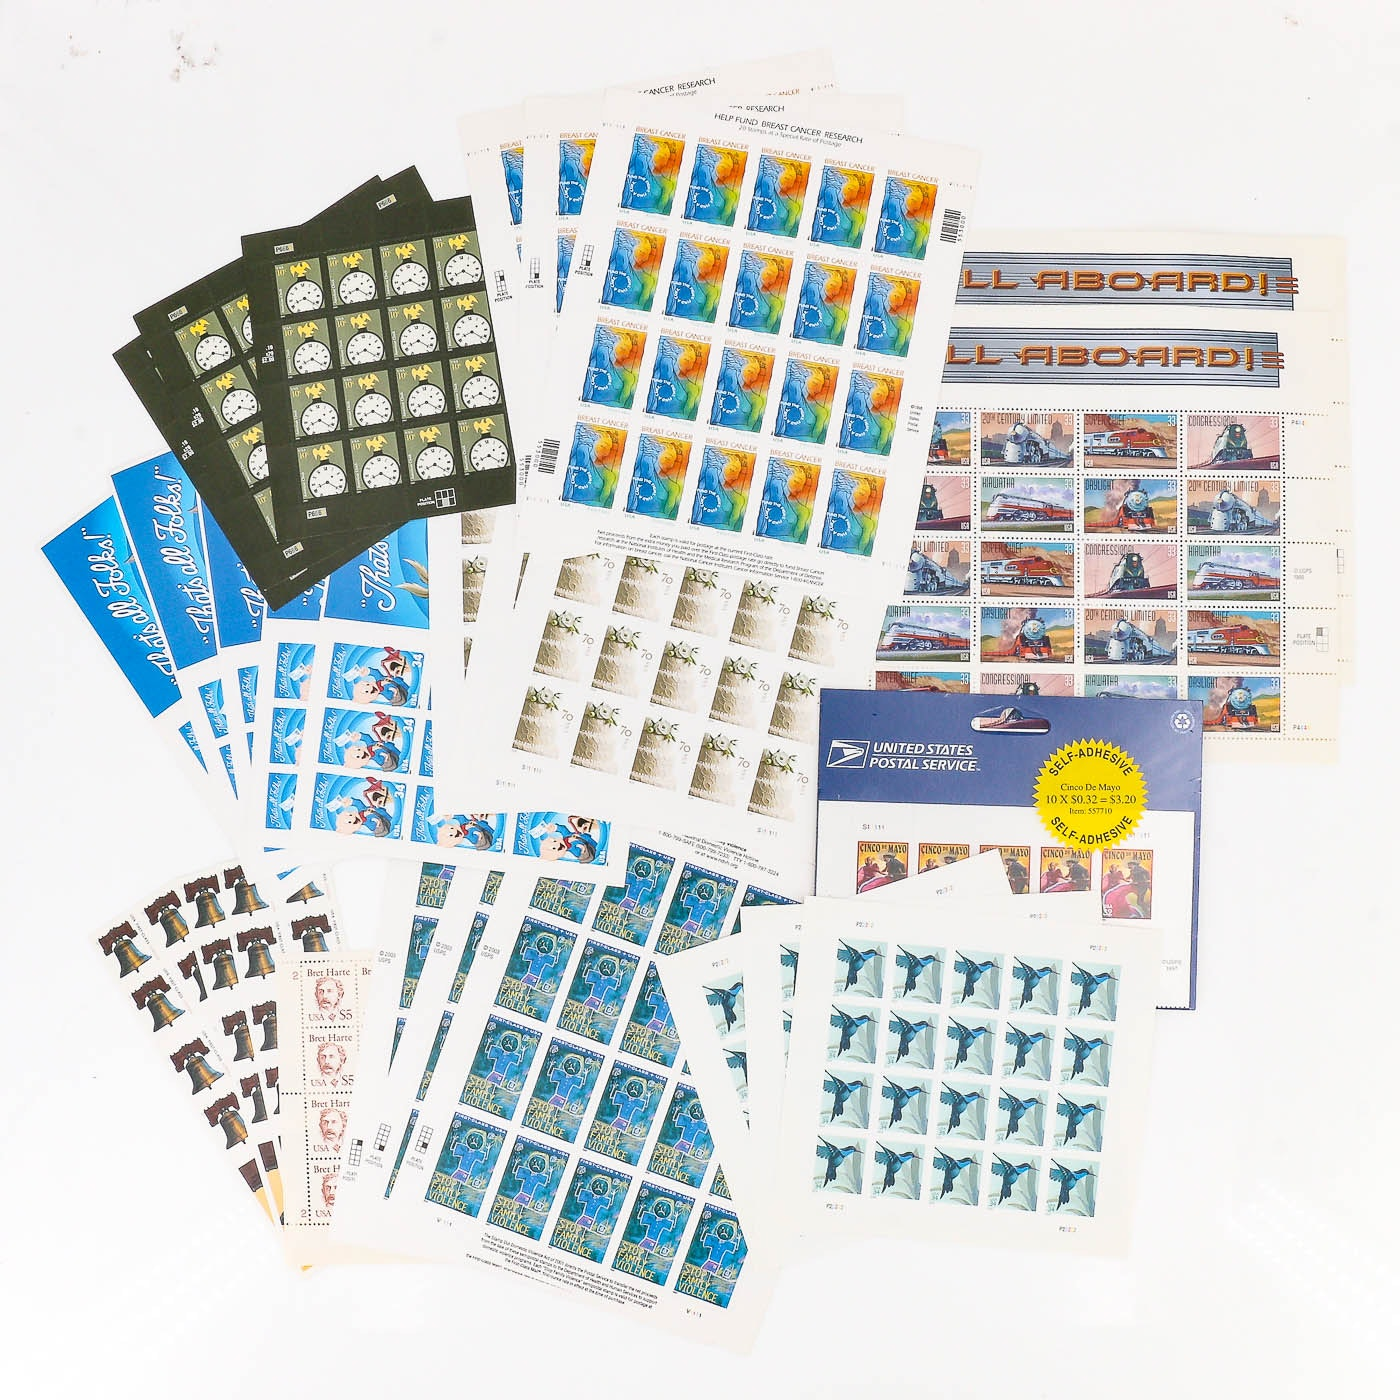 Group of 25 Stamp Sheets and Books of U.S. Stamps